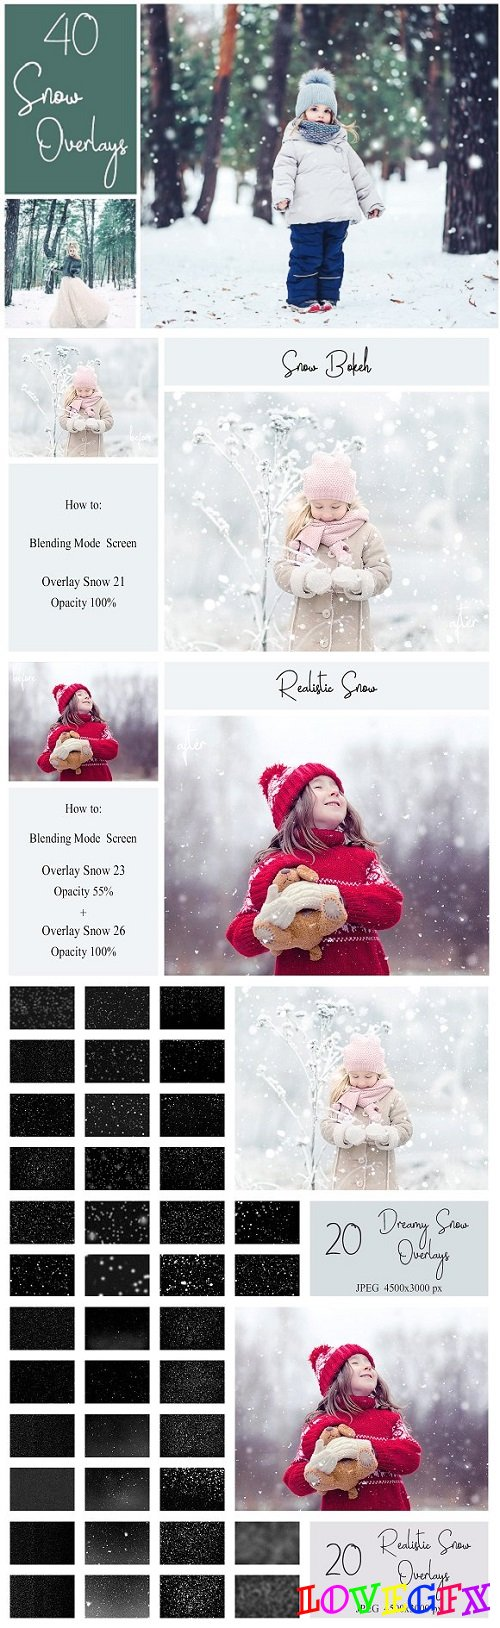 40 Snow Overlays - 2052434